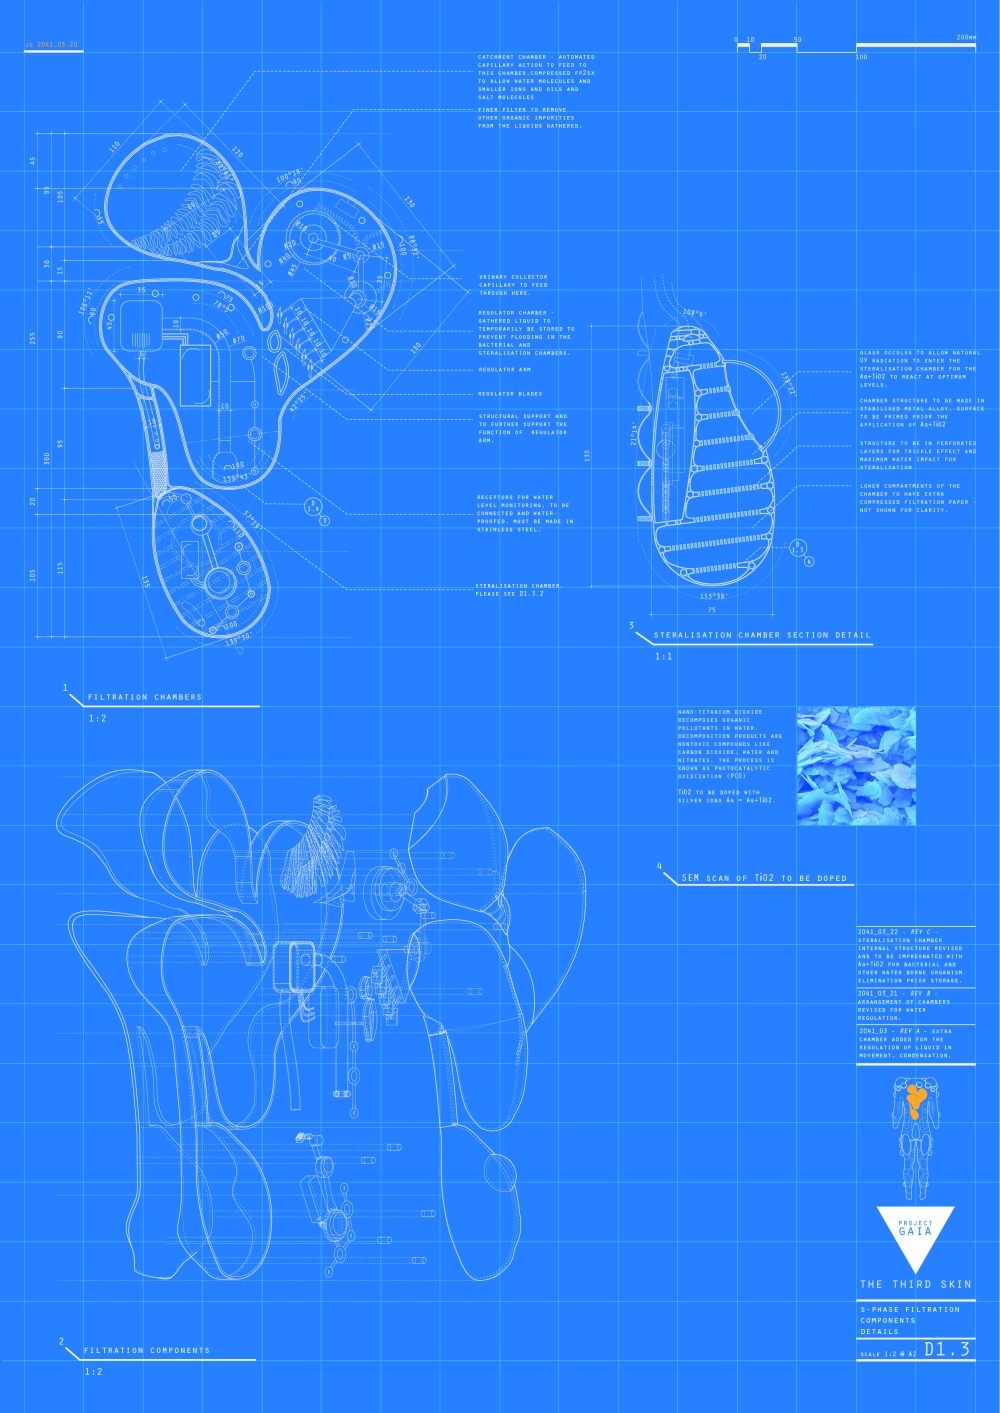 JOHNGATIP_BLUEPRINTS_THETHIRDSKIN_16